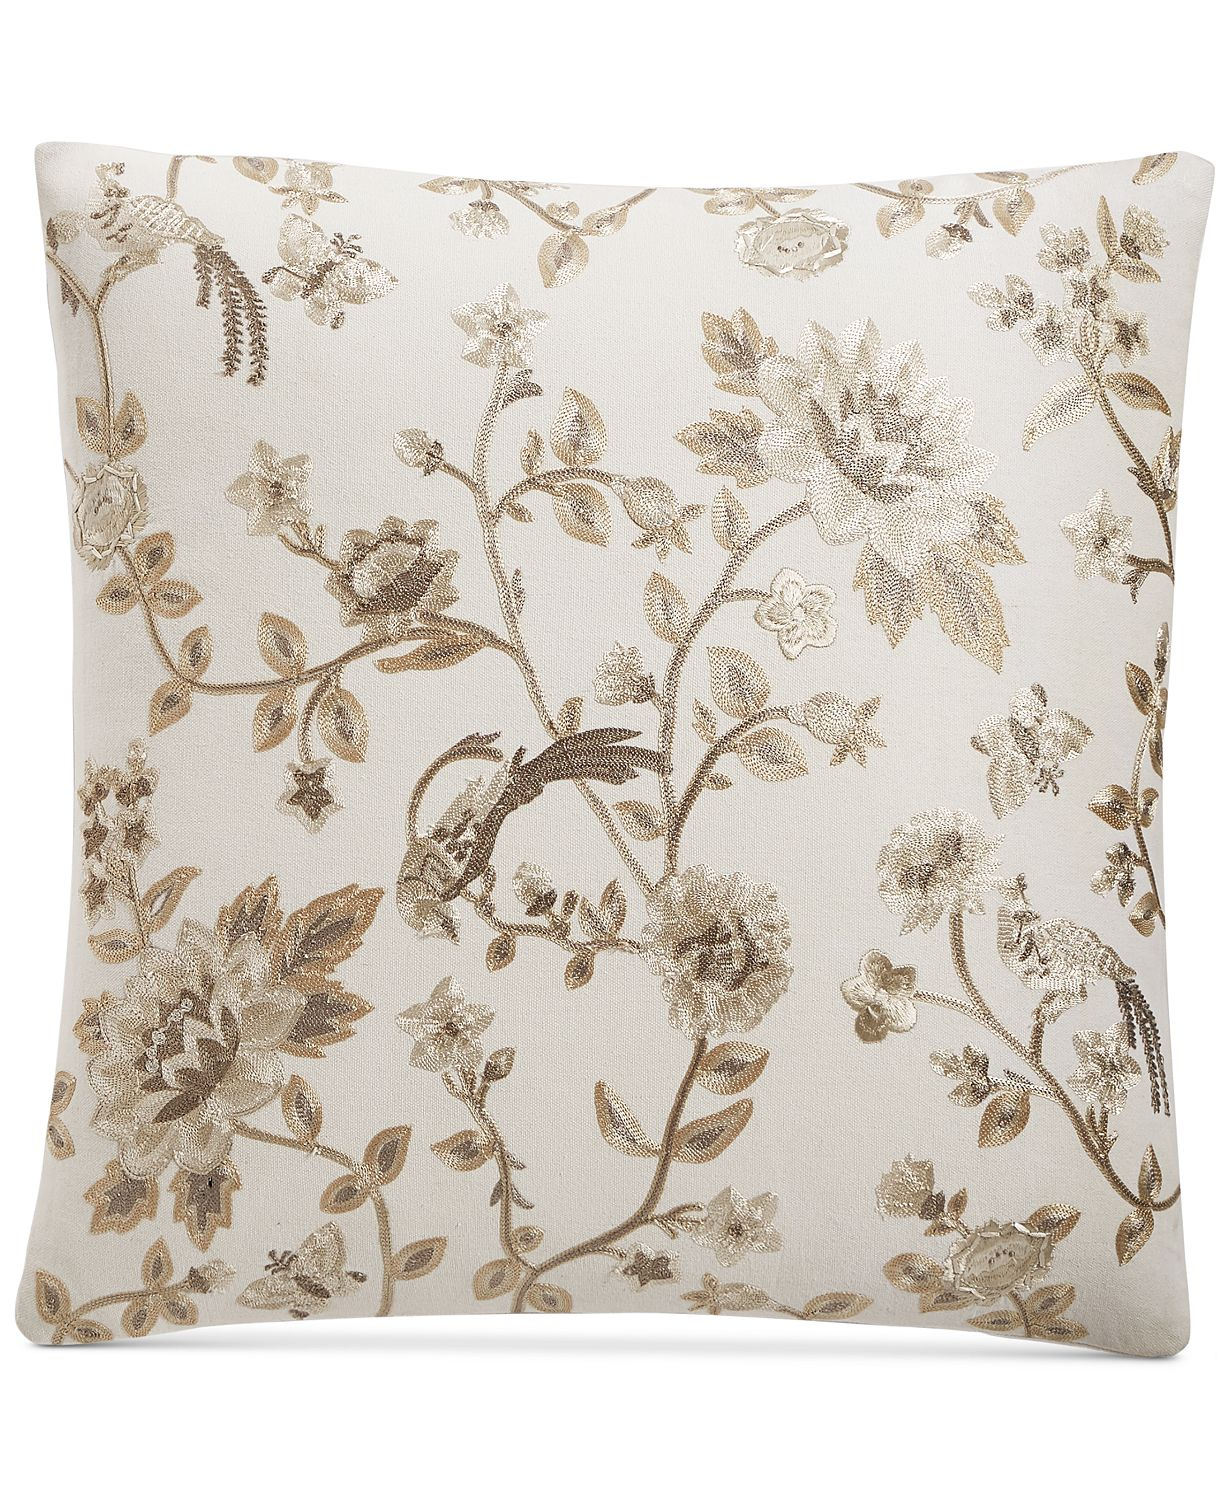 "Lucky Brand Embroidered Chinoserie 20"" x 20"" Decorative Couch Pillow"